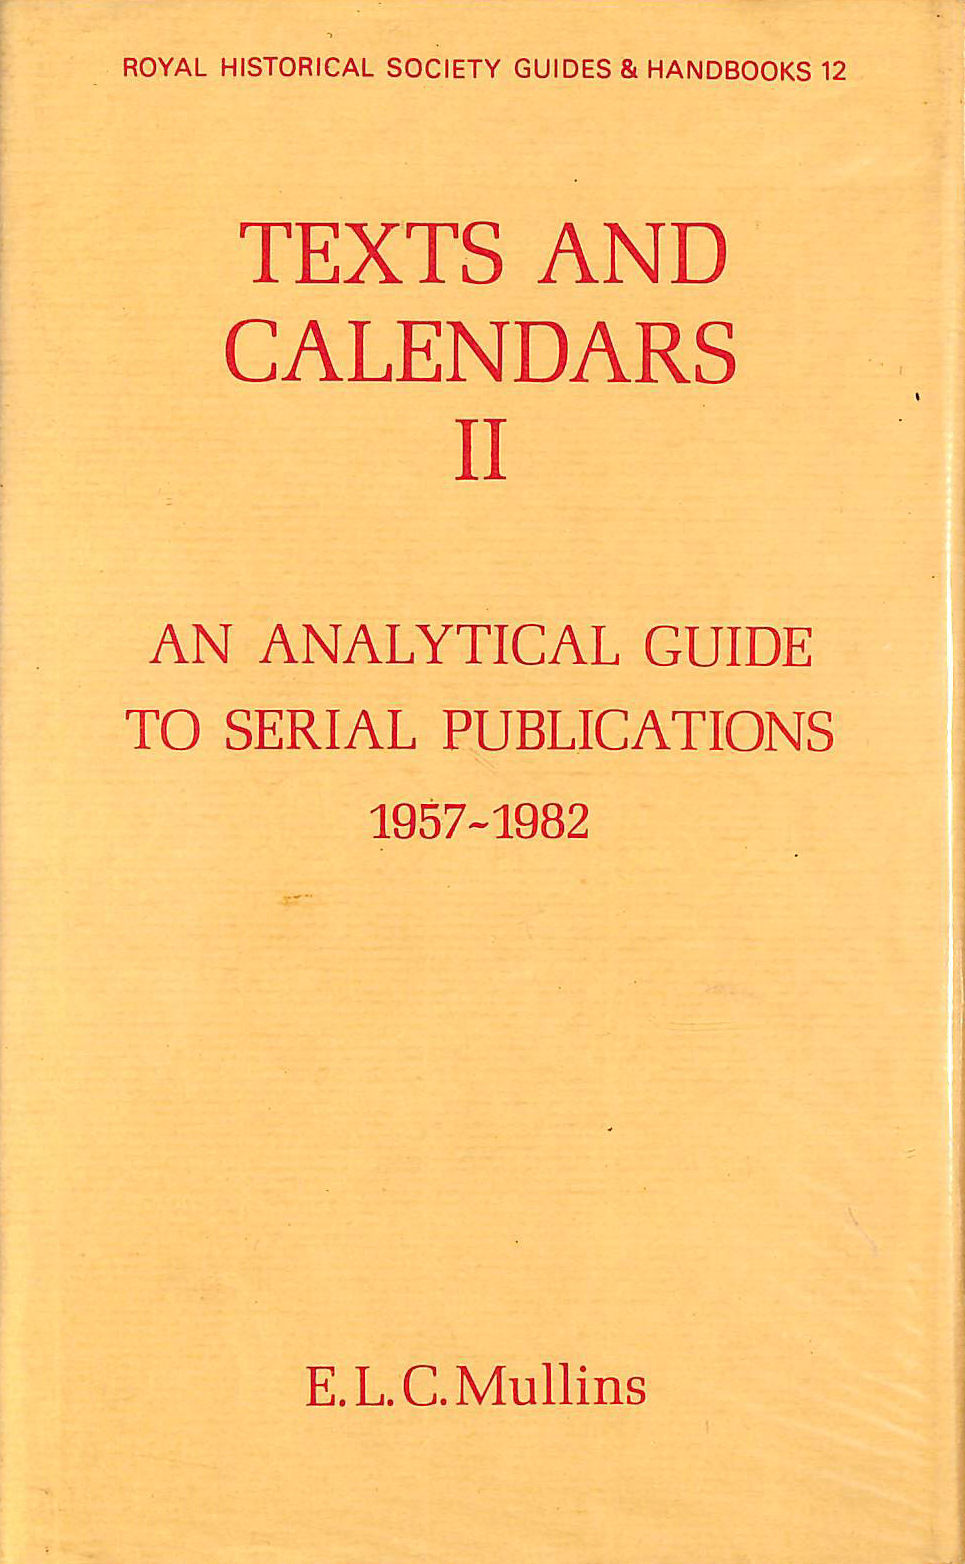 Image for Texts and Calendars II: An analytical guide to serial publications 1957-82: 1957-82 v. 2 (Royal Historical Society Guides and Handbooks)